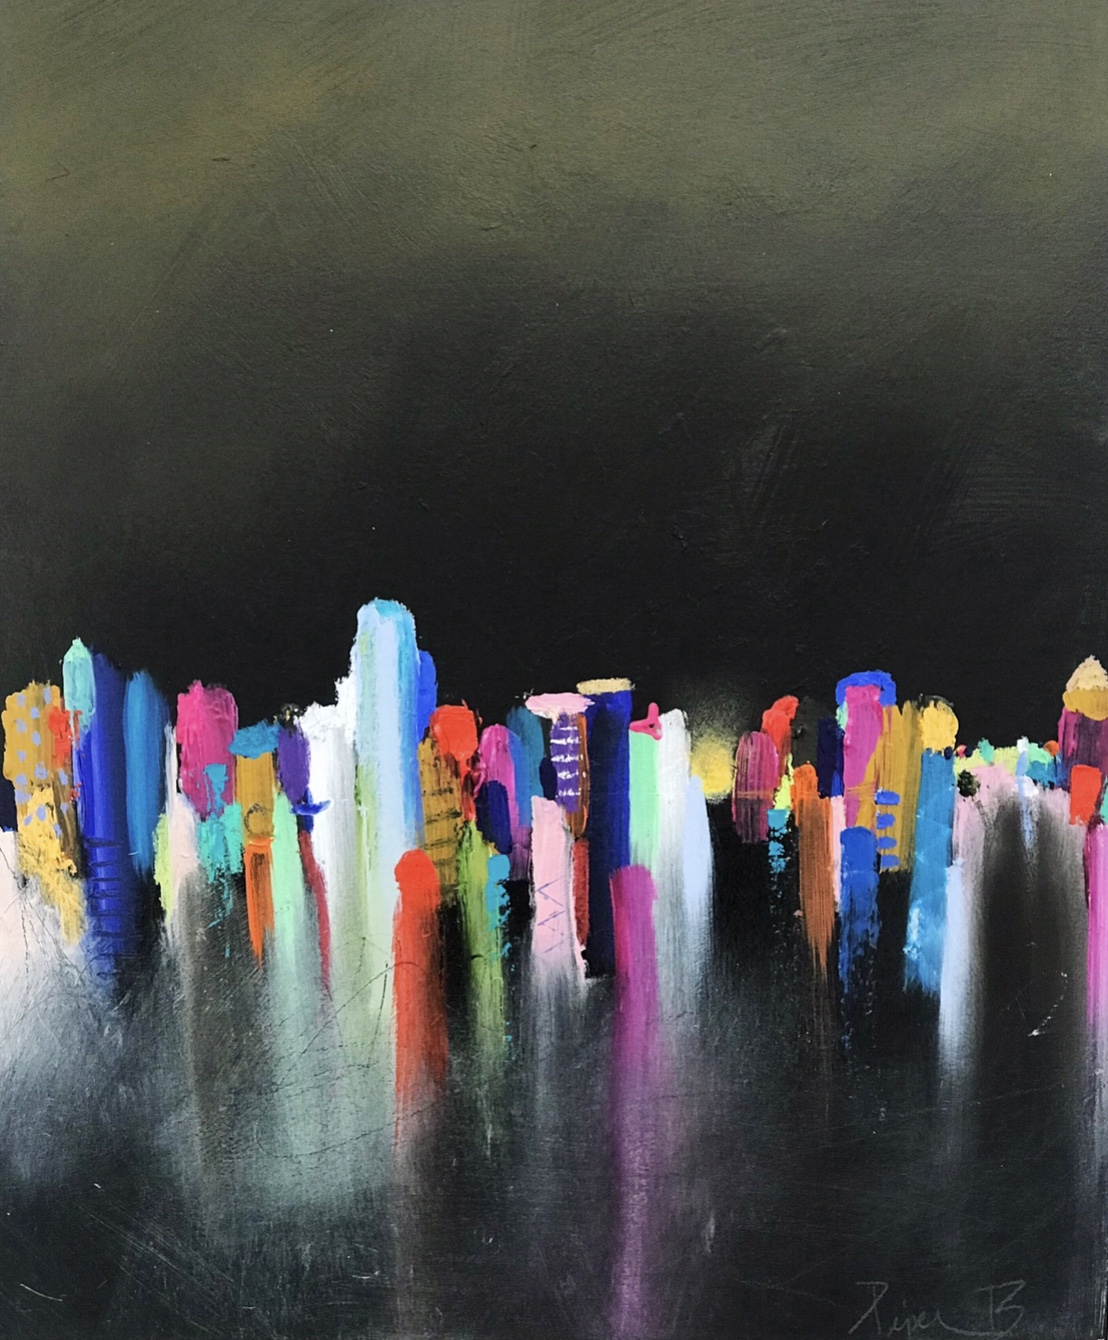 City Scape OIL 12x18 SOLD PIECES of my heart.jpg